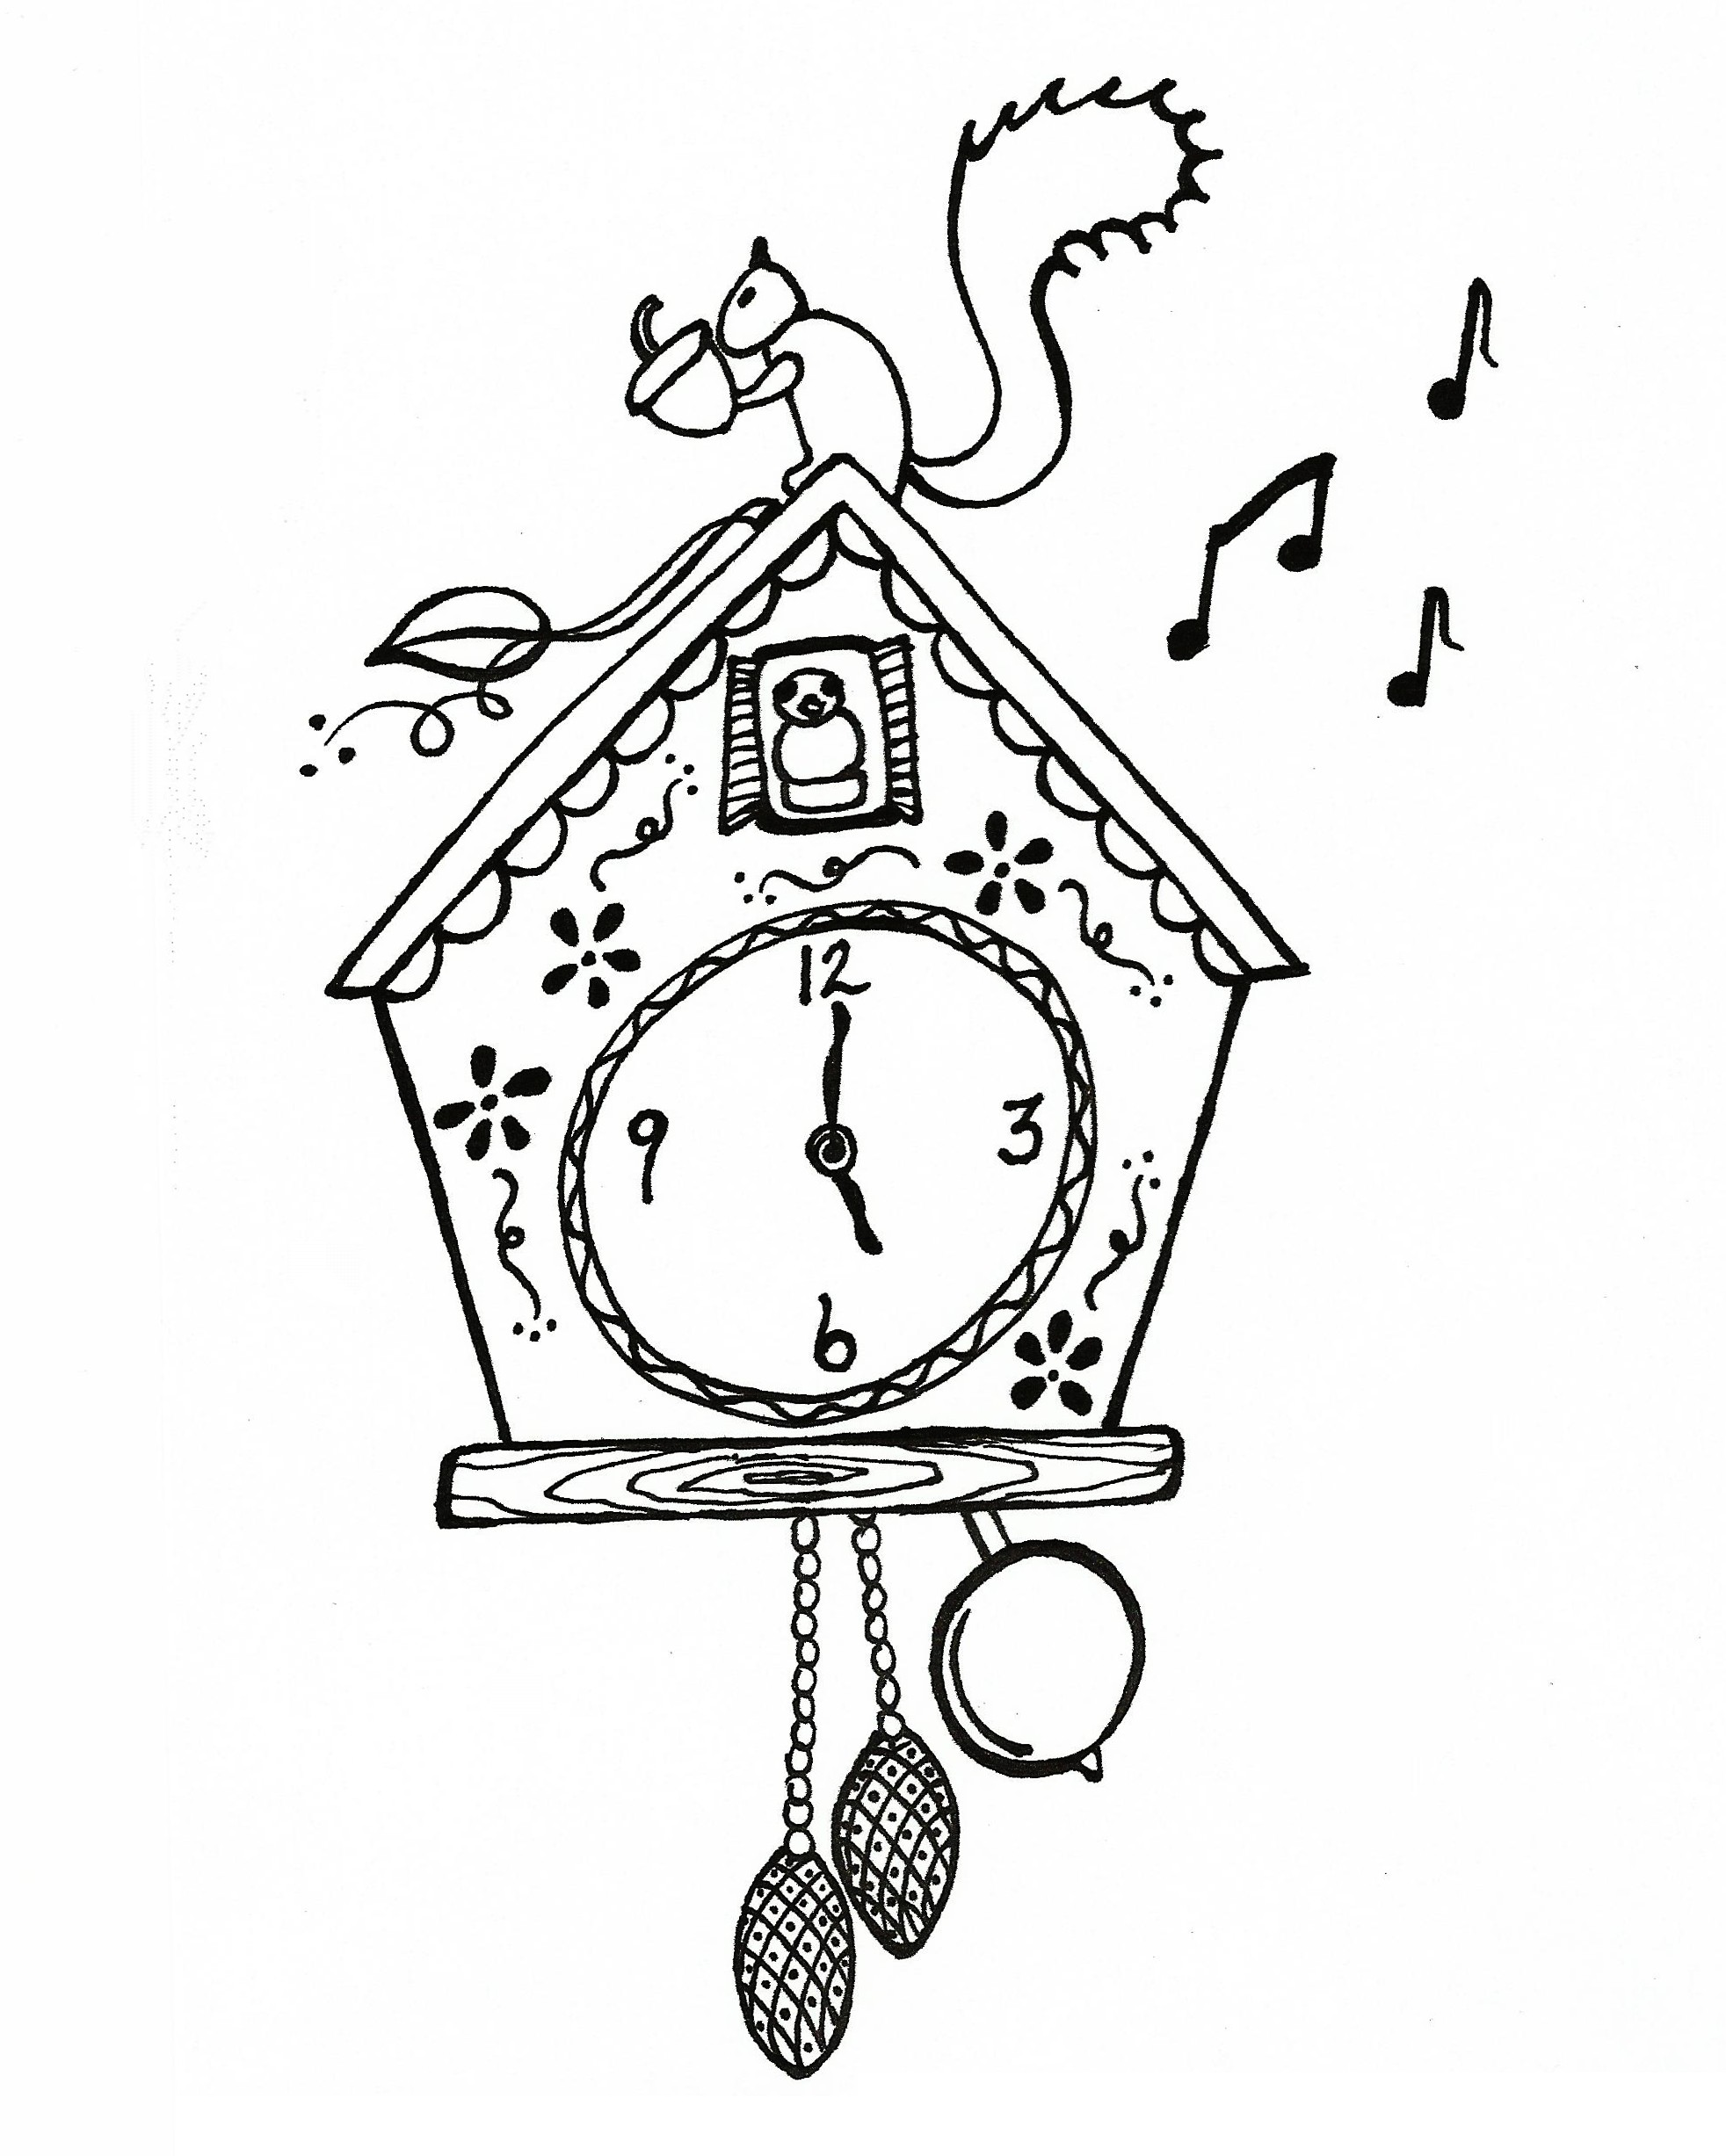 cuckoo clock coloring sheet coloring pages